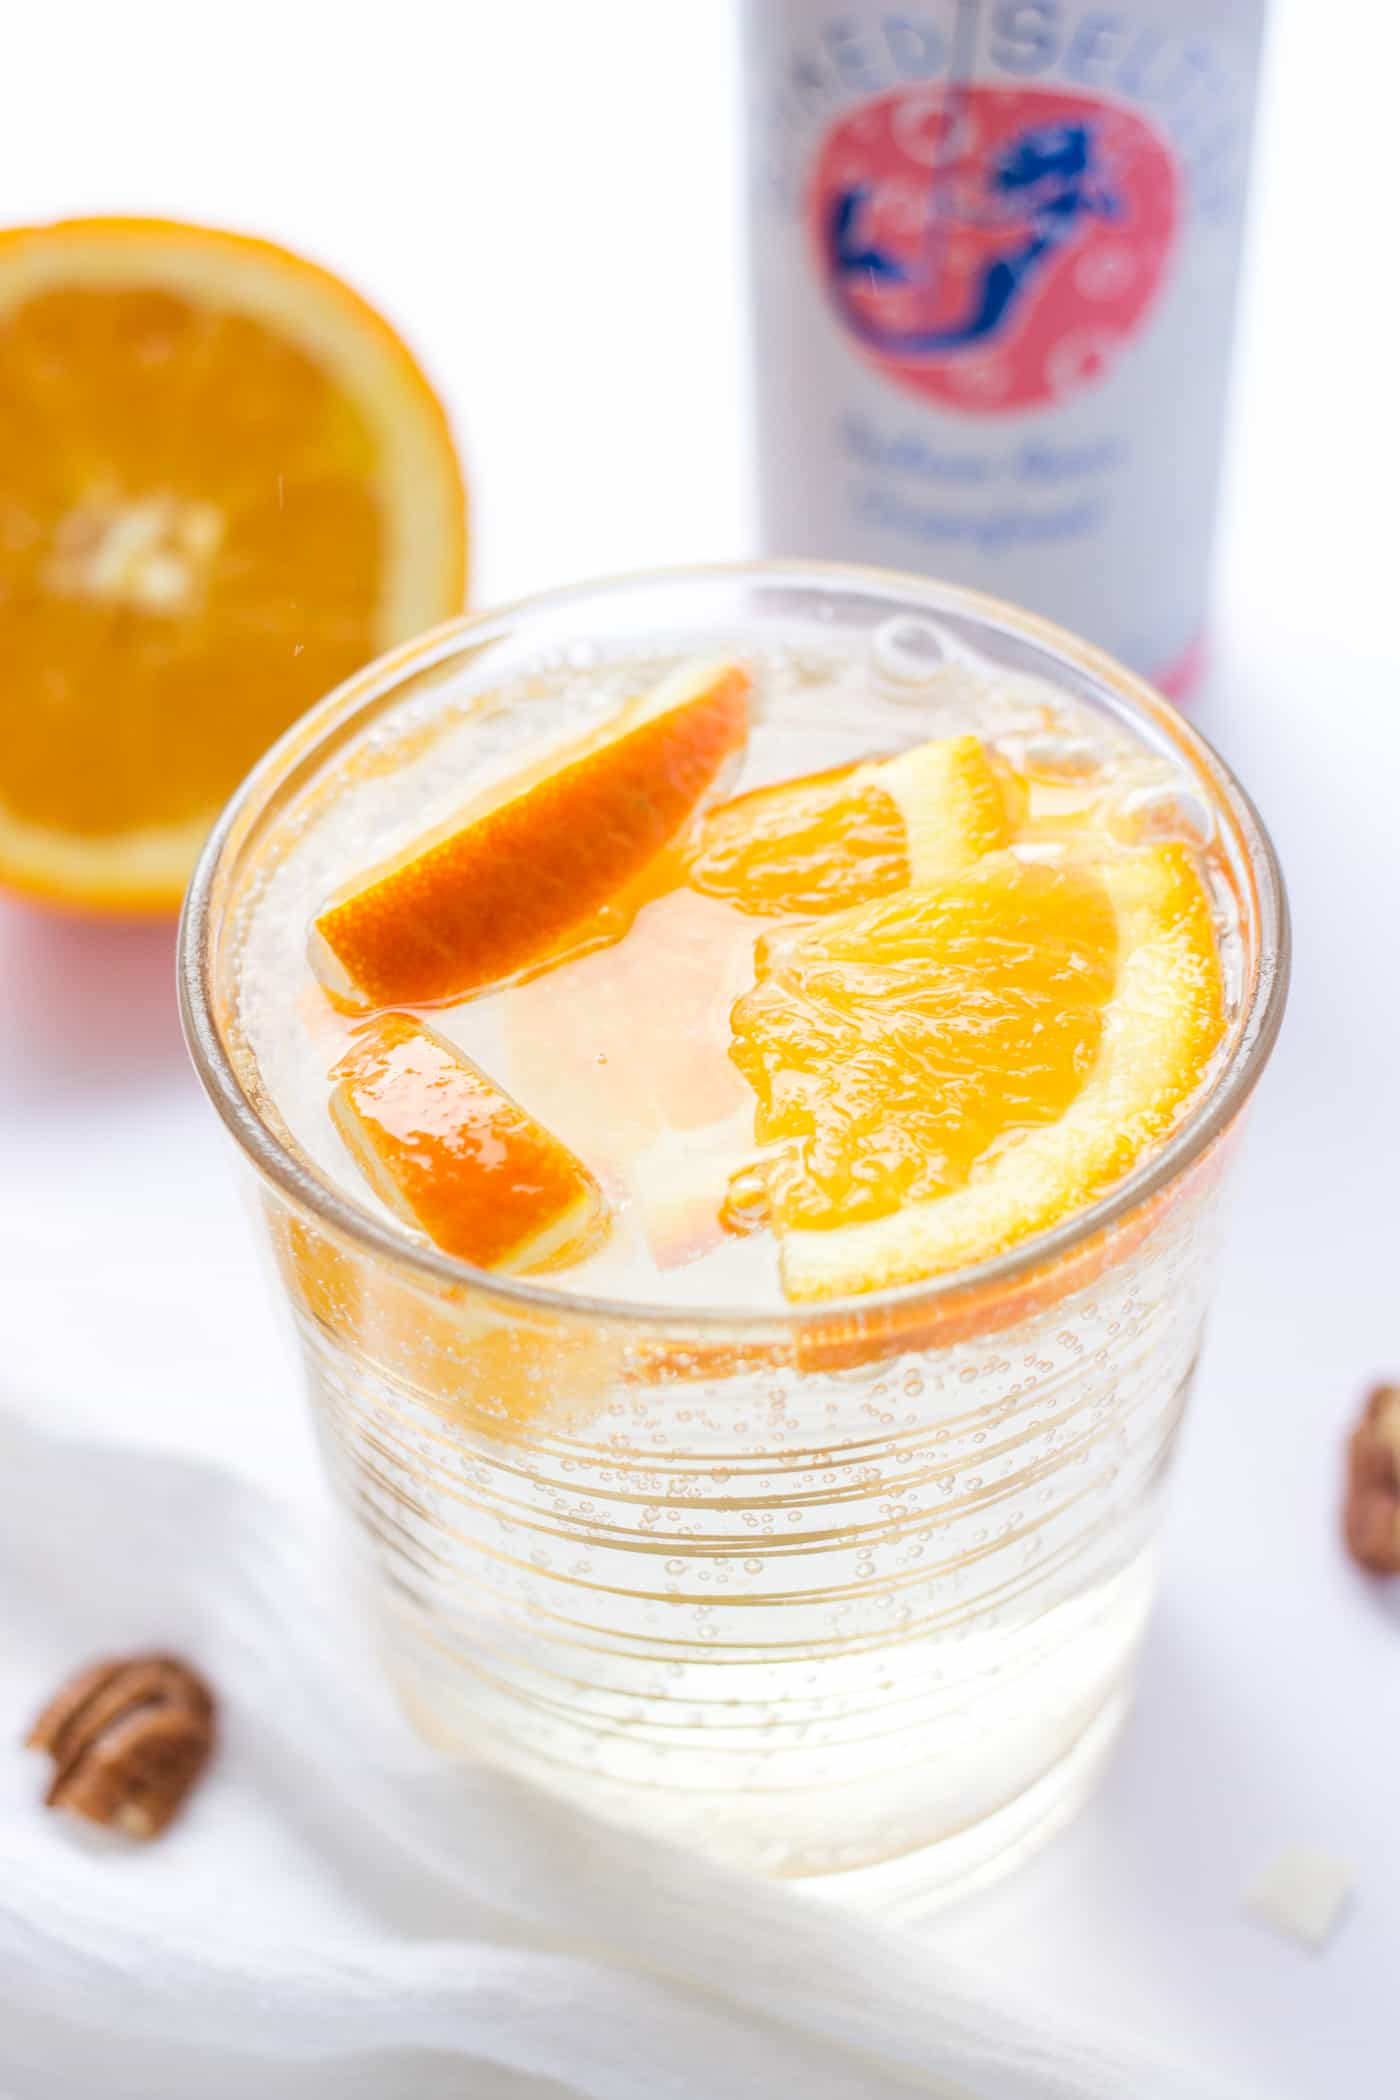 Brunch cocktail recipe with only 2 ingredients -- Grapefruit SpikedSeltzer and Sliced Oranges! Beats a mimosa anytime!